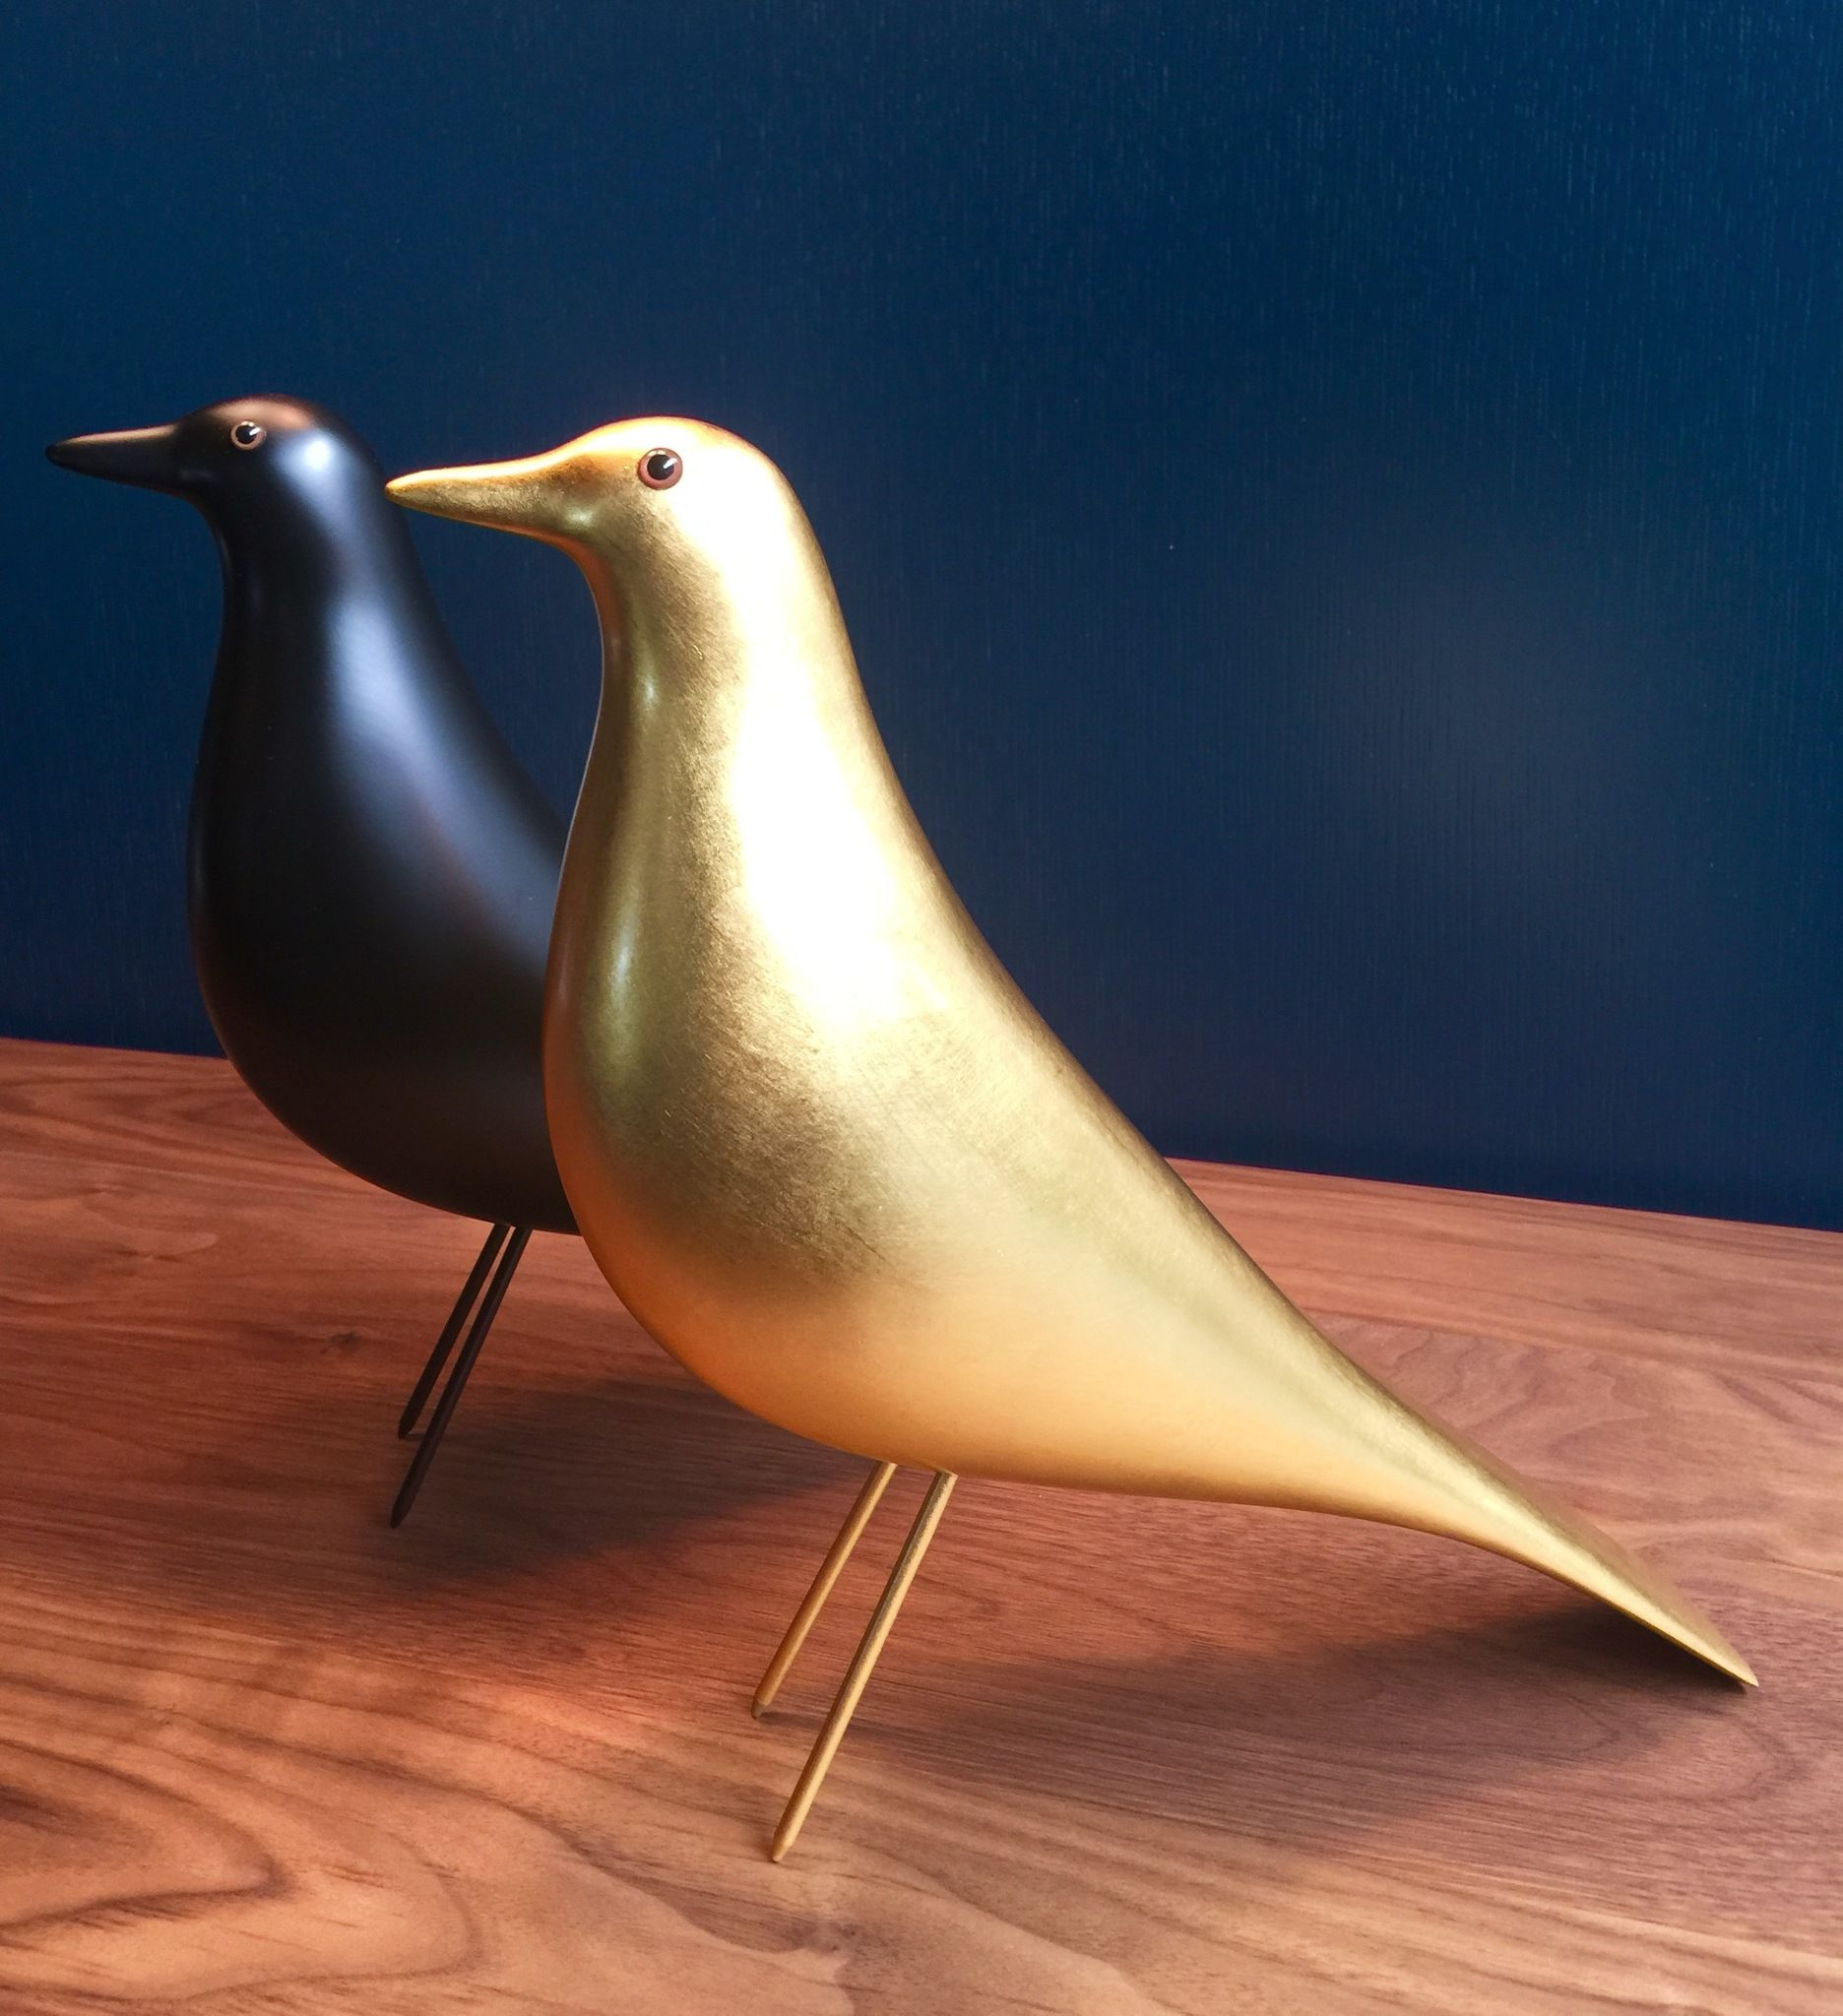 Introducing The Very Special Limited Edition Gold Eames Bird From Vitra Seen Here With His Black Friend Availab Eames House Bird Iconic Furniture Eames House